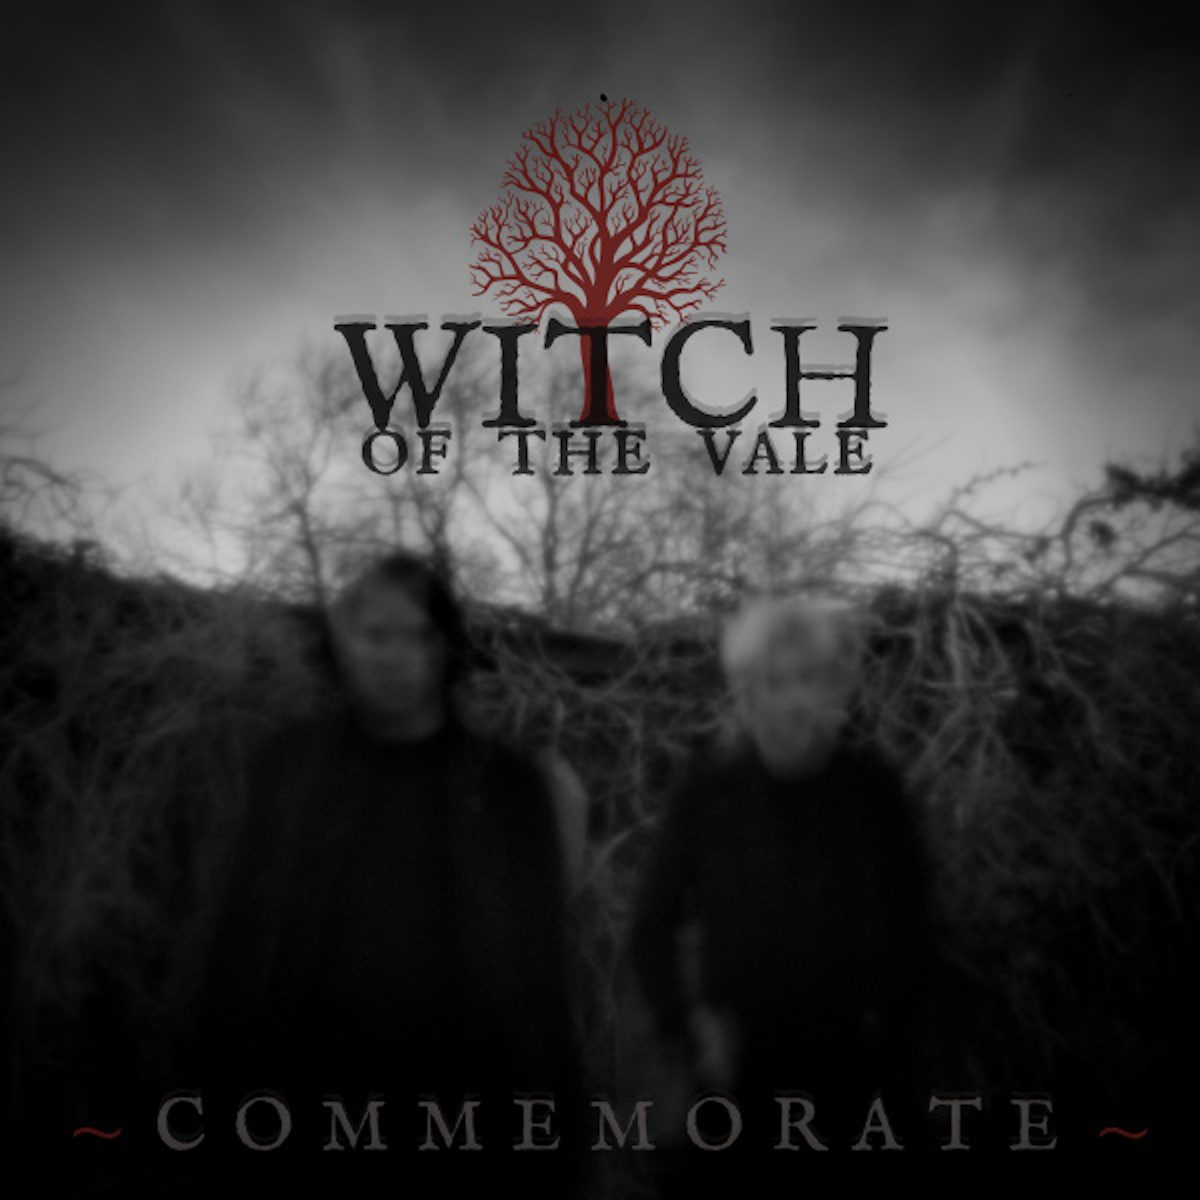 Darkwave newcomers Witch Of The Vale re-release debut on CD and vinyl + new video